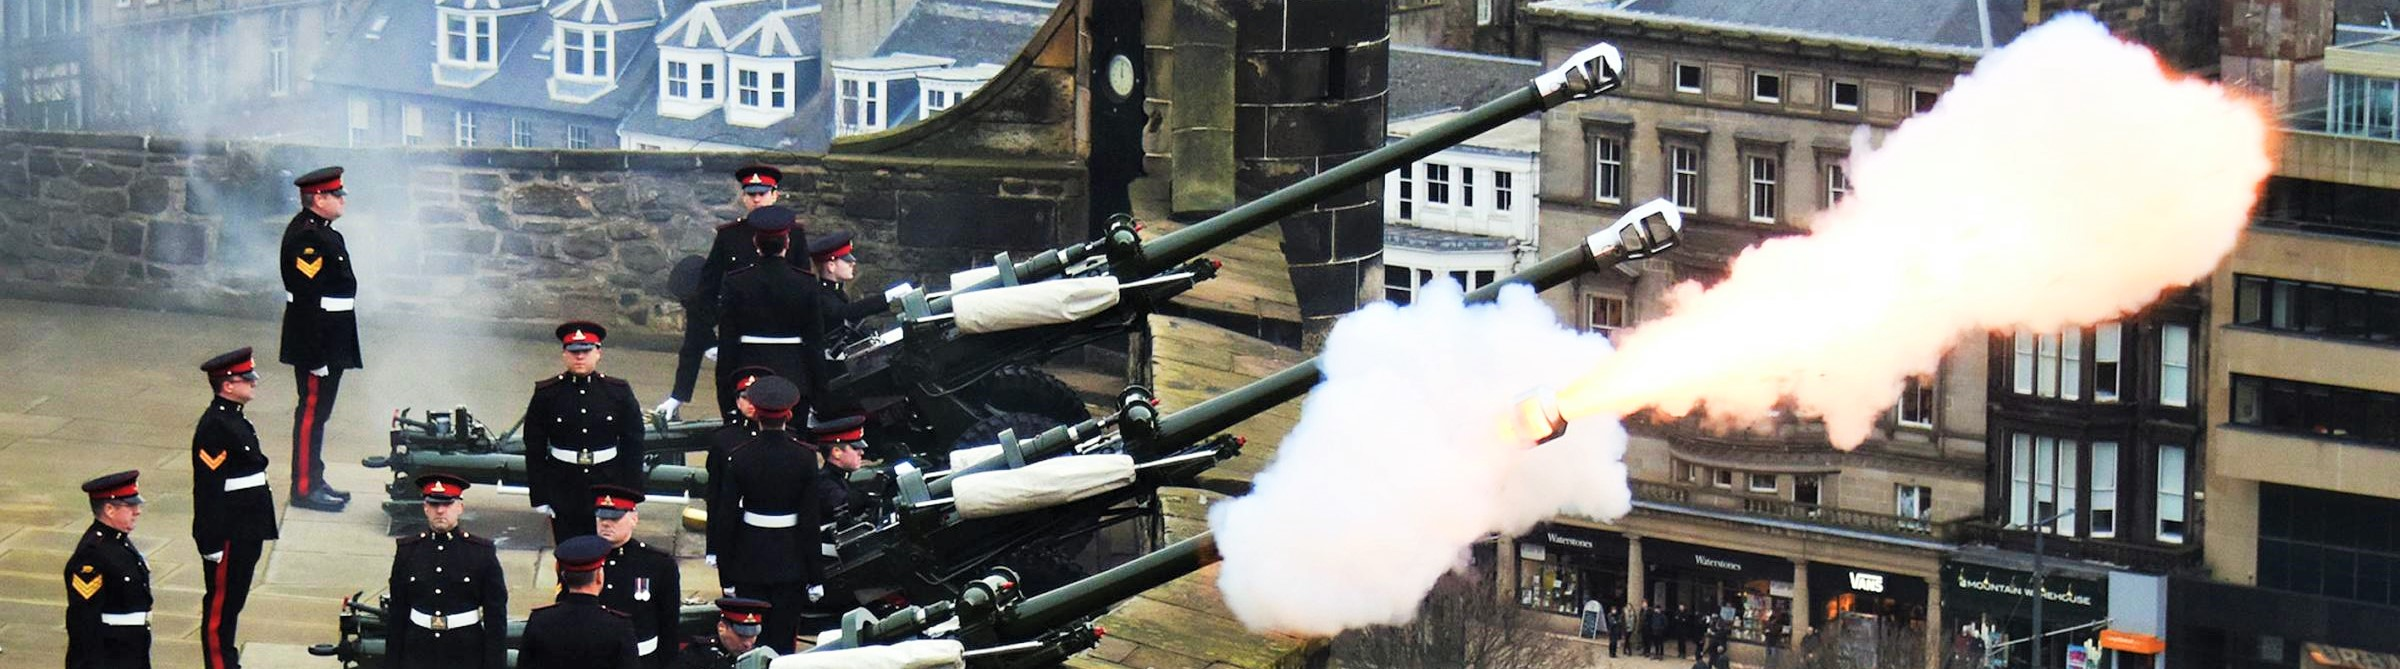 british_royl_21_gun_salute_whiskey_urban_flavours